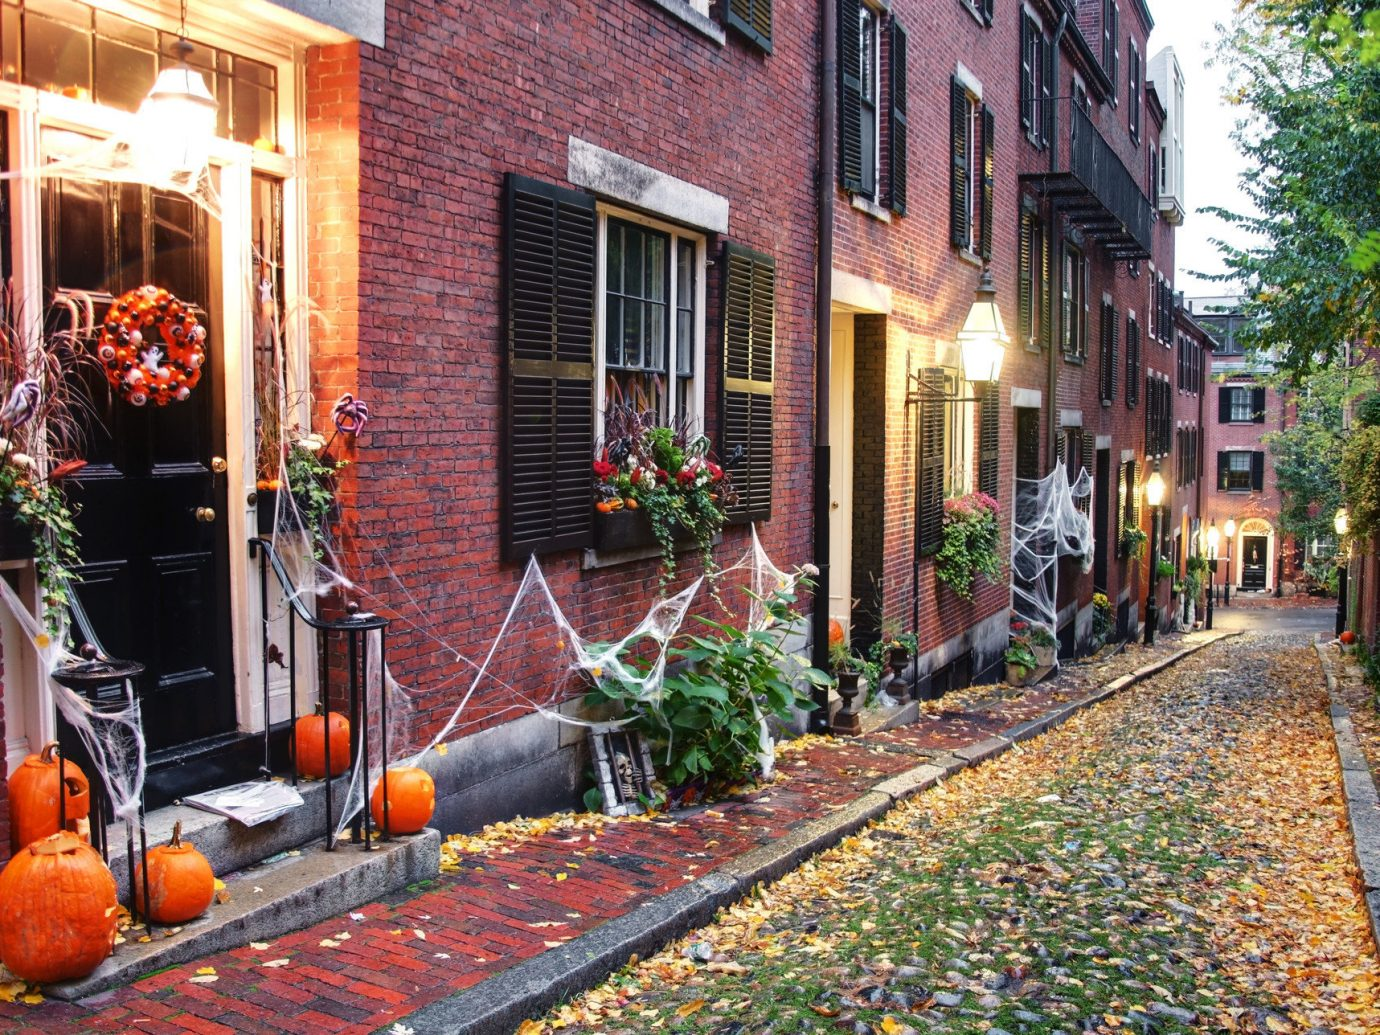 Offbeat building outdoor road sidewalk way Town neighbourhood street urban area human settlement alley autumn Courtyard flower yard